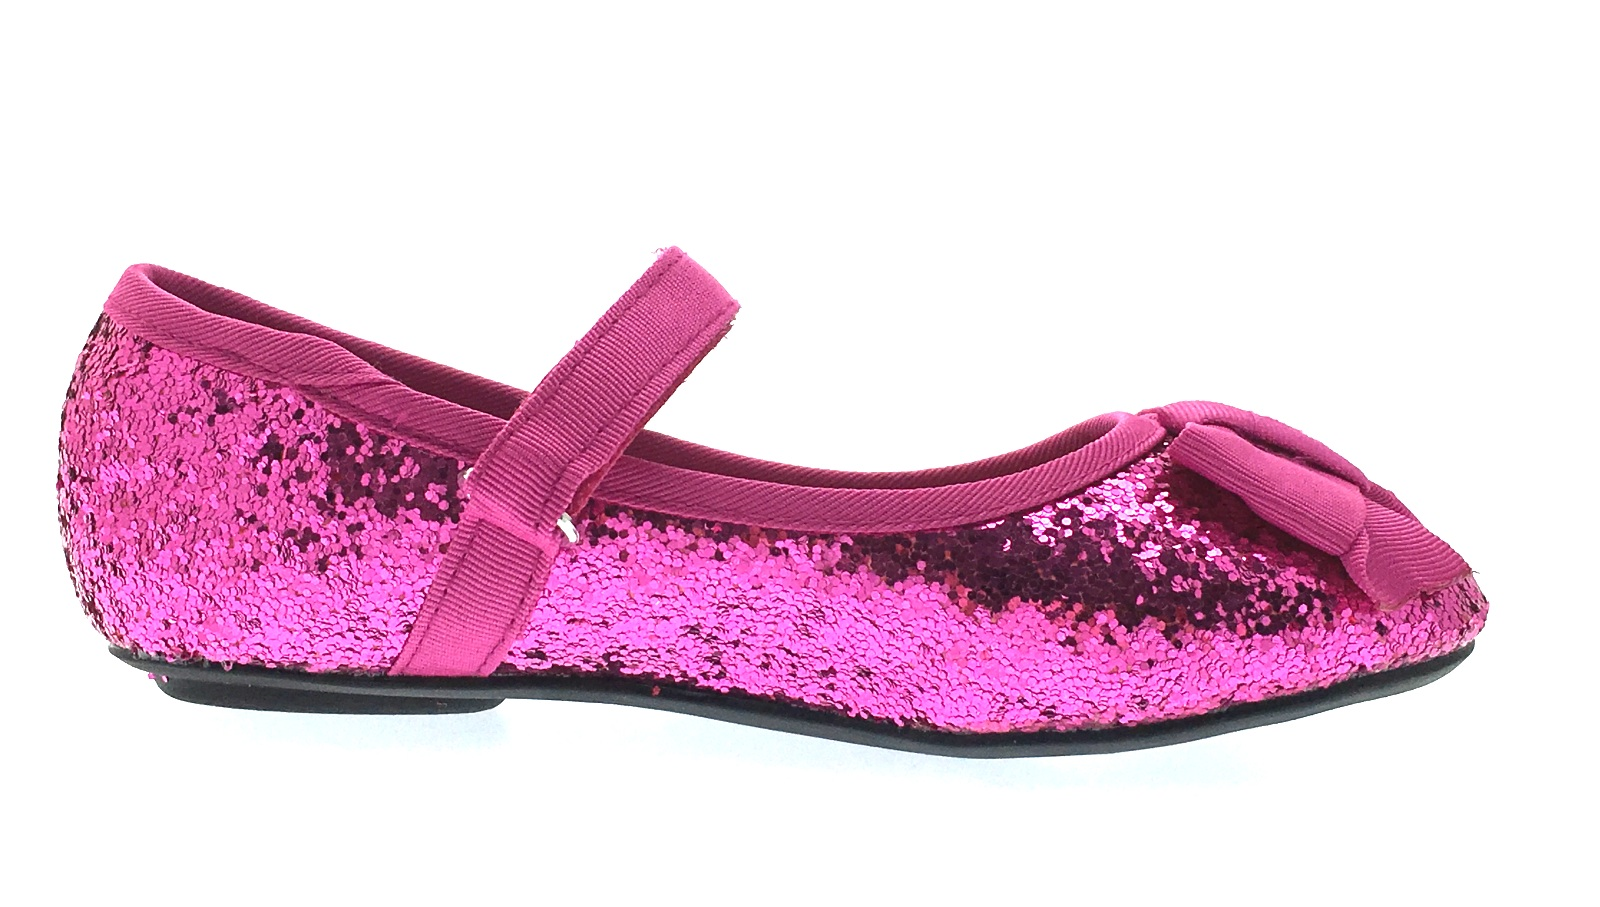 GIRLS SPARKLY GLITTER FLAT BALLET DOLLY PUMPS EVENING PARTY SHOES KIDS UK 6-12